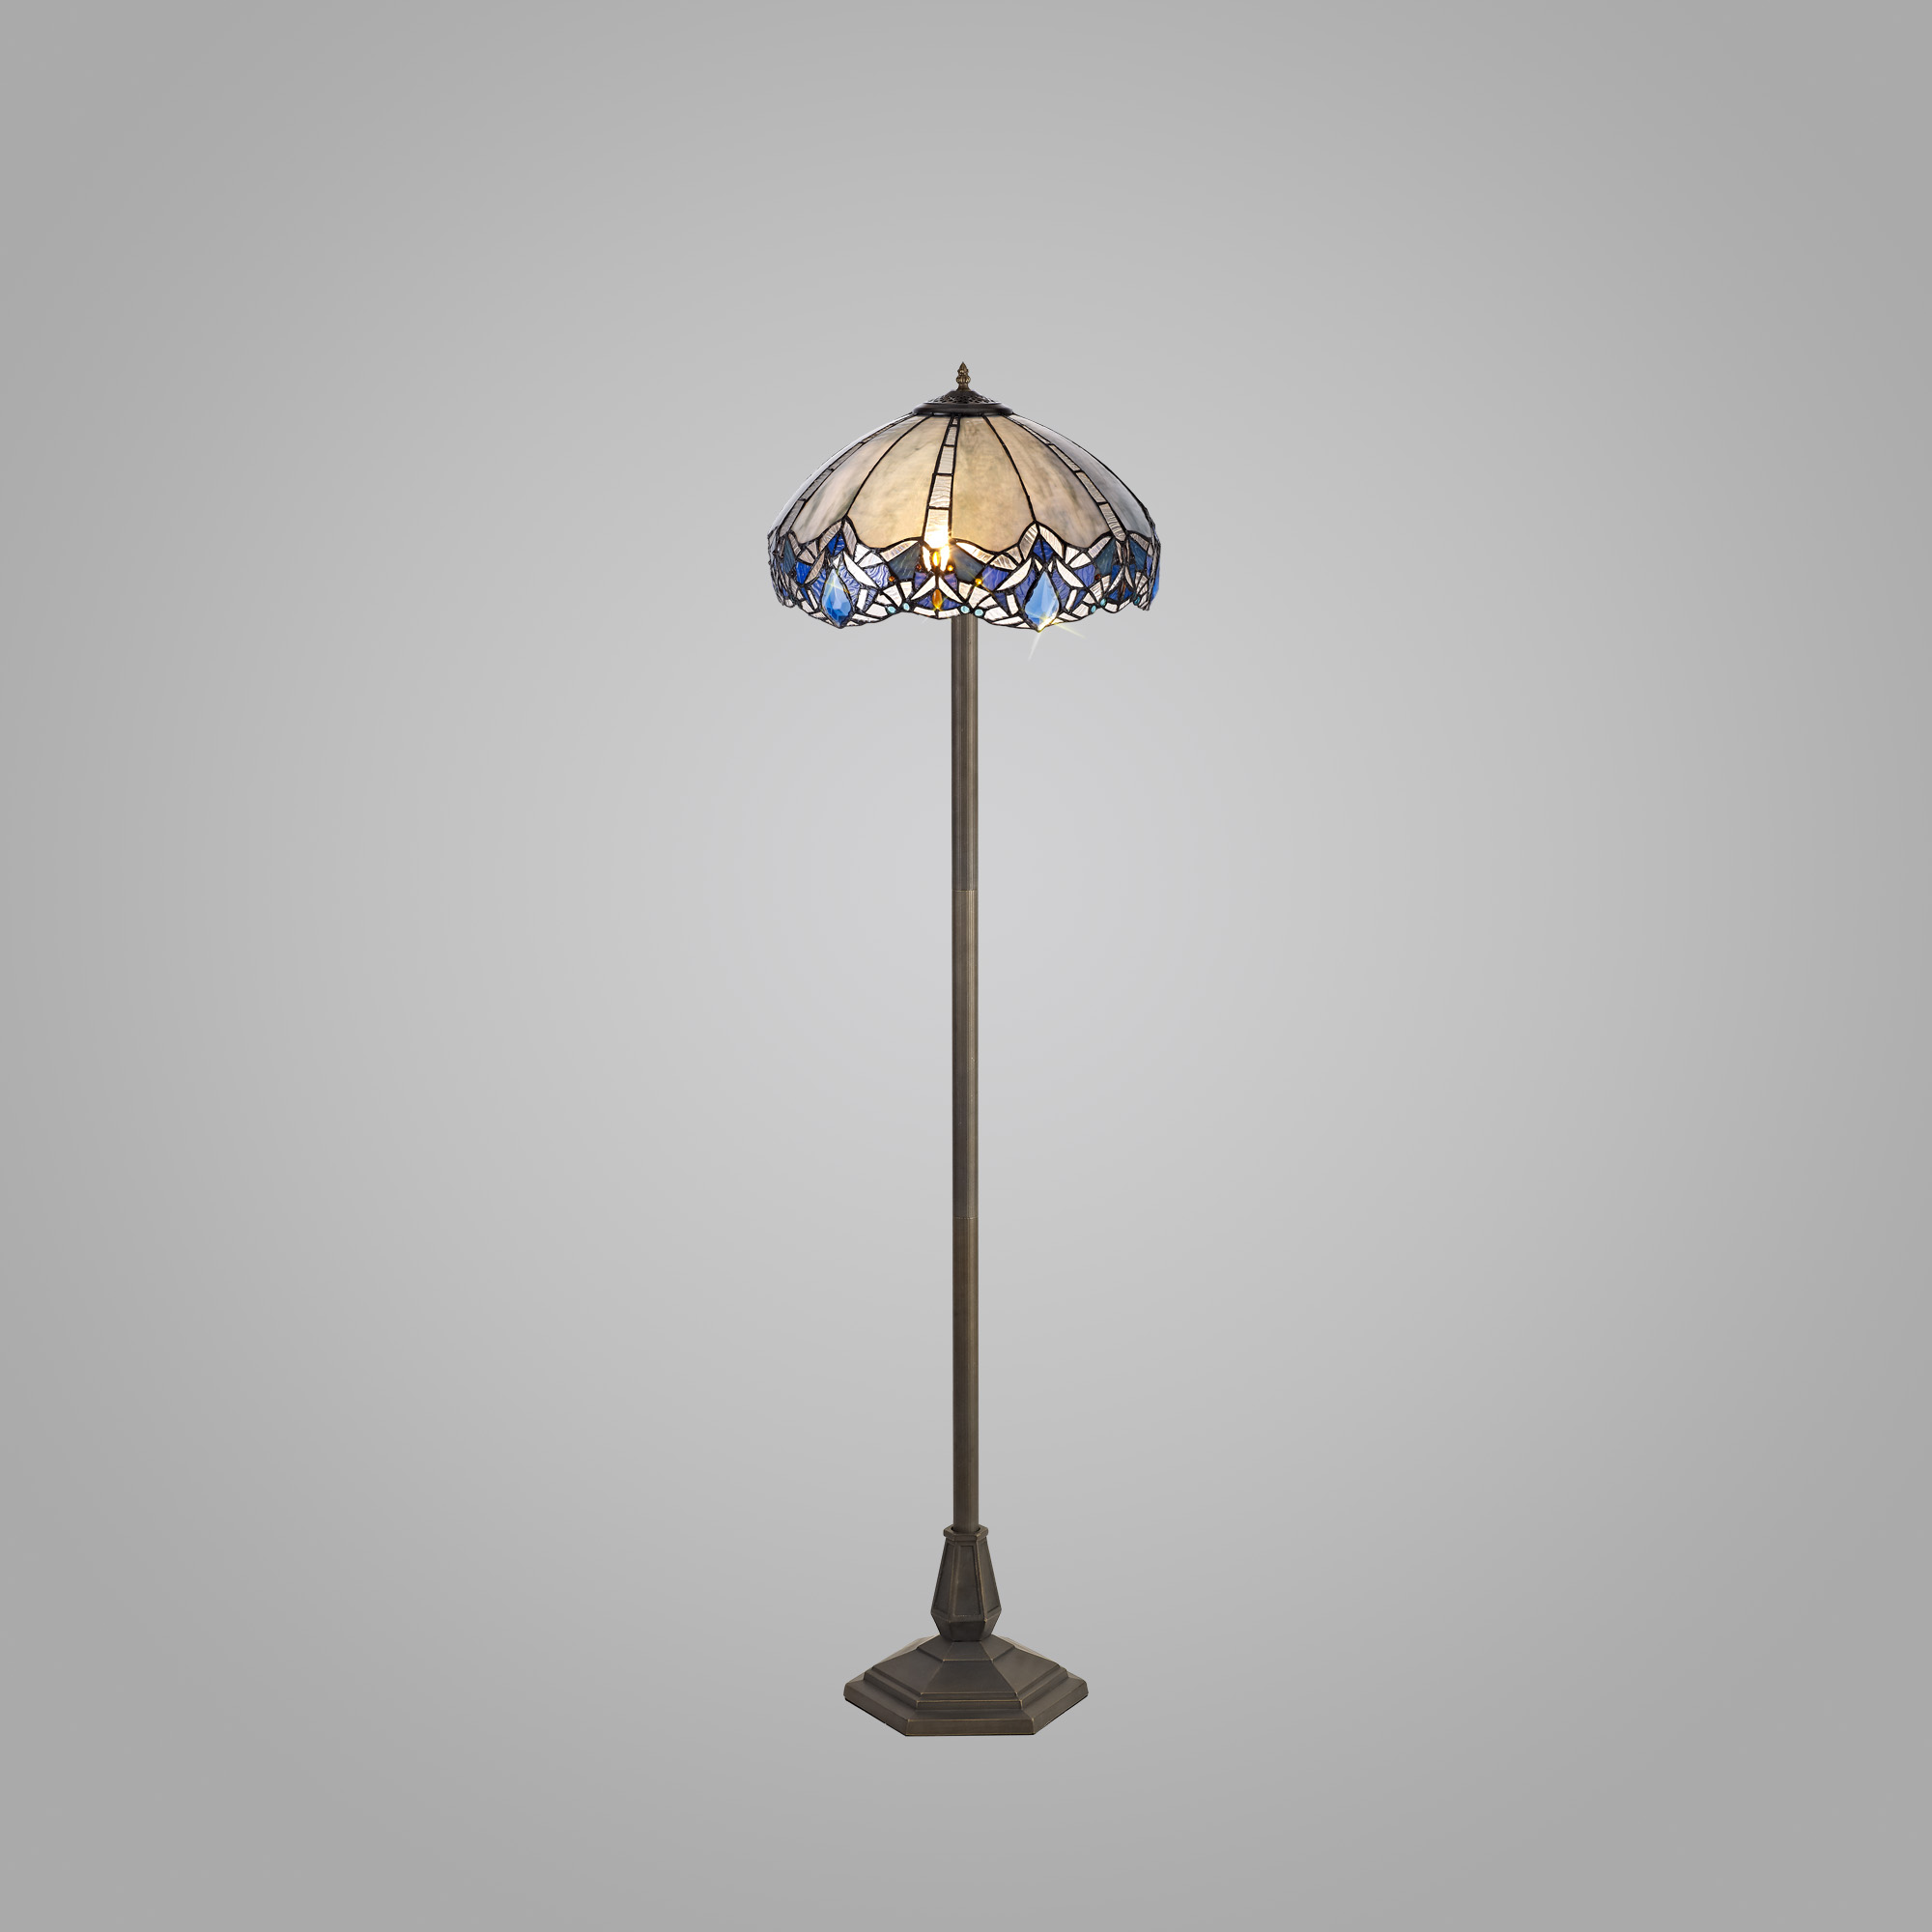 2 Light Octagonal Floor Lamp E27 With 40cm Tiffany Shade, Blue/Clear Crystal/Aged Antique Brass